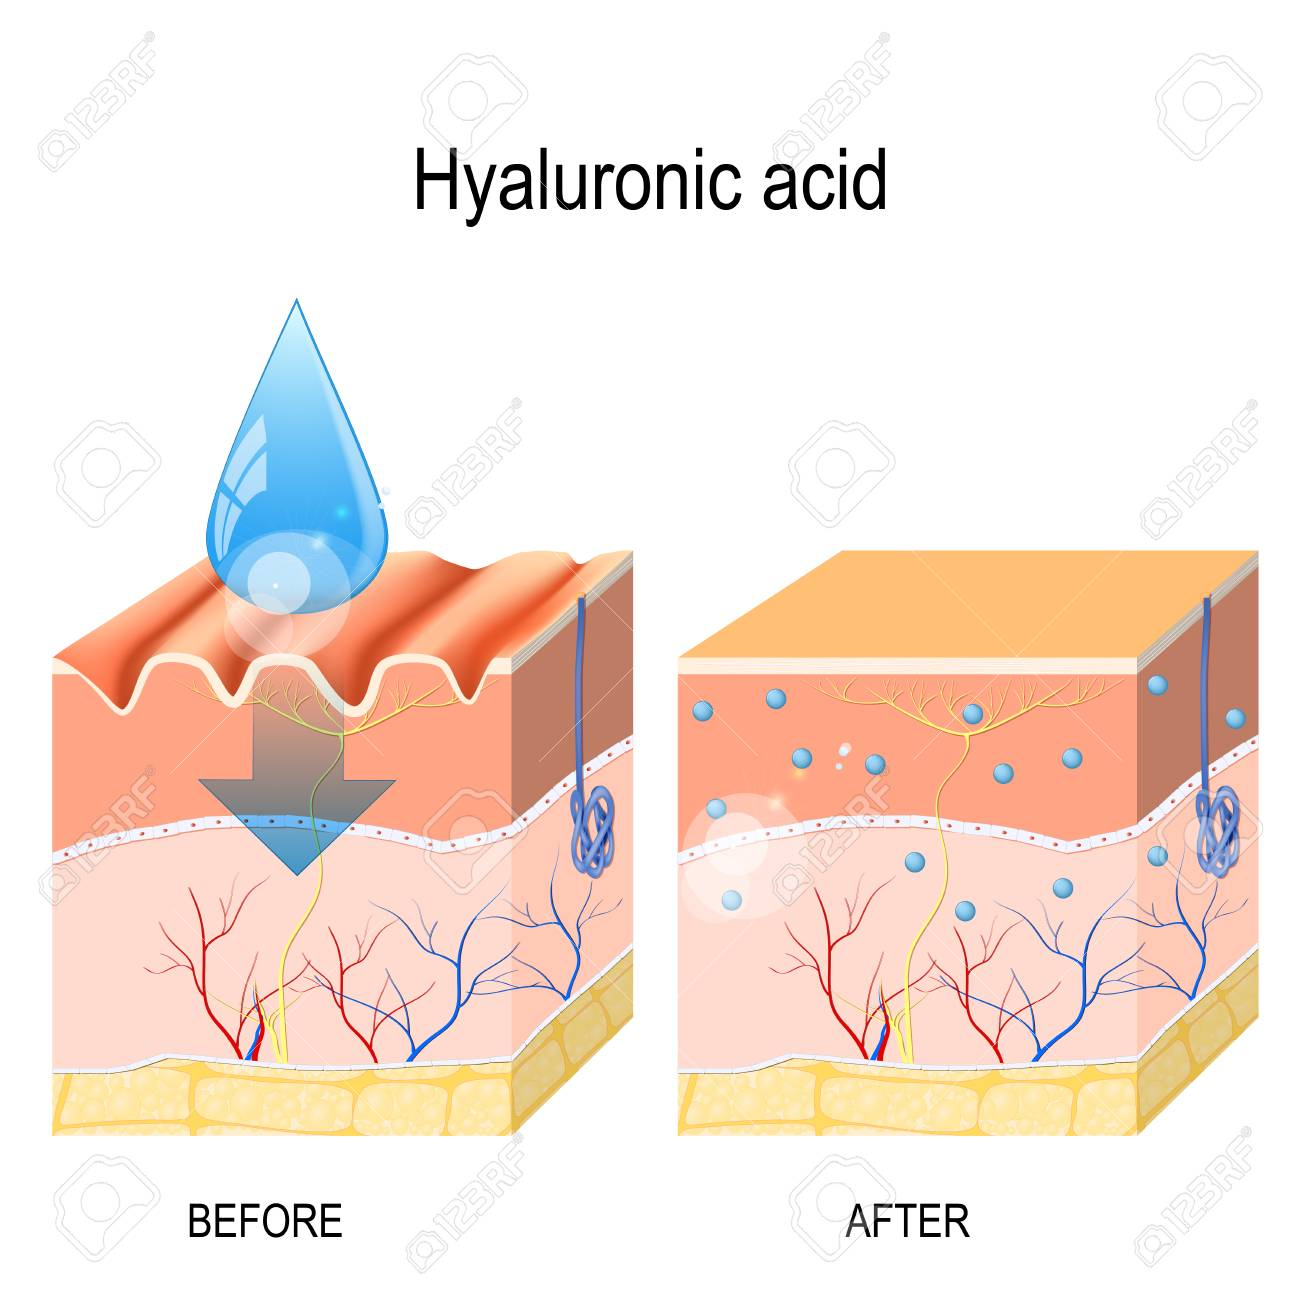 hight resolution of hyaluronic acid skin care products skin rejuvenation with help of hyaluronic acid stock